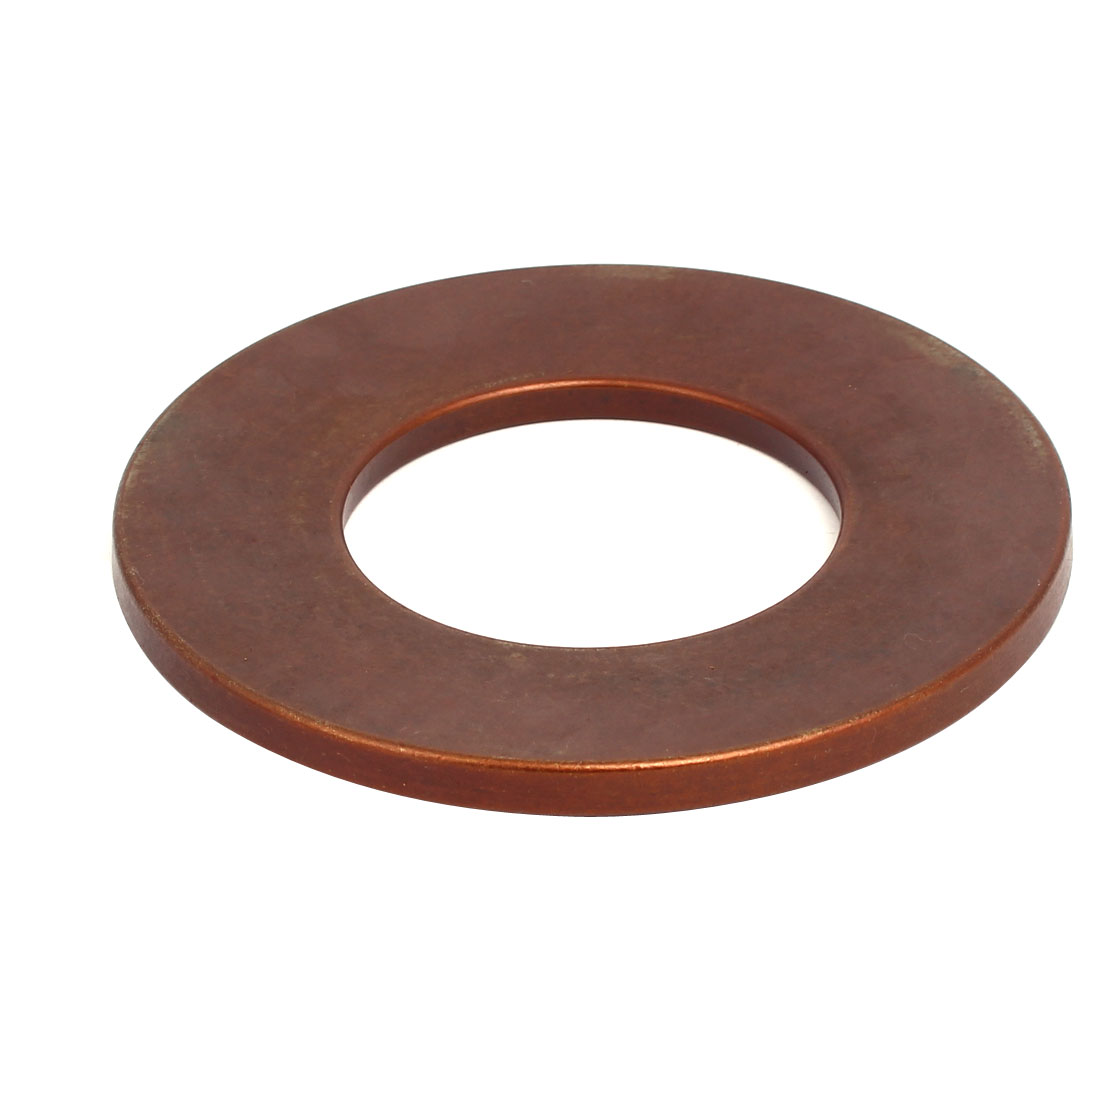 140mm Outer Dia 72mm Inner Diameter 8mm Thickness Belleville Spring Washer